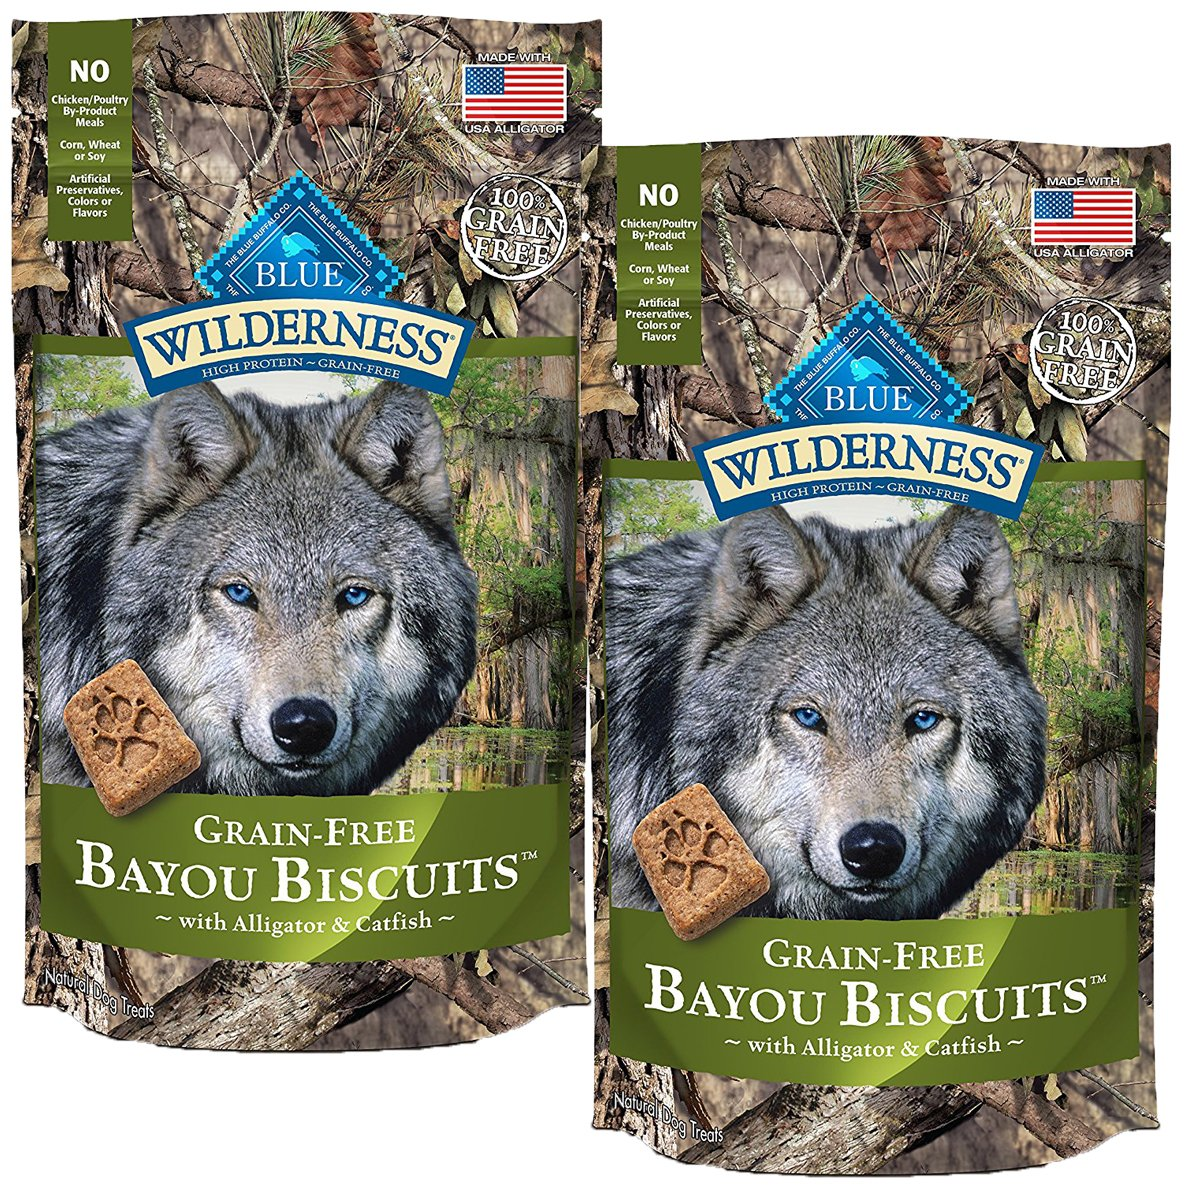 BLUE Wilderness Grain-Free Bayou Biscuits with Alligator & Catfish Dog Treats 8-oz, 2 Pack